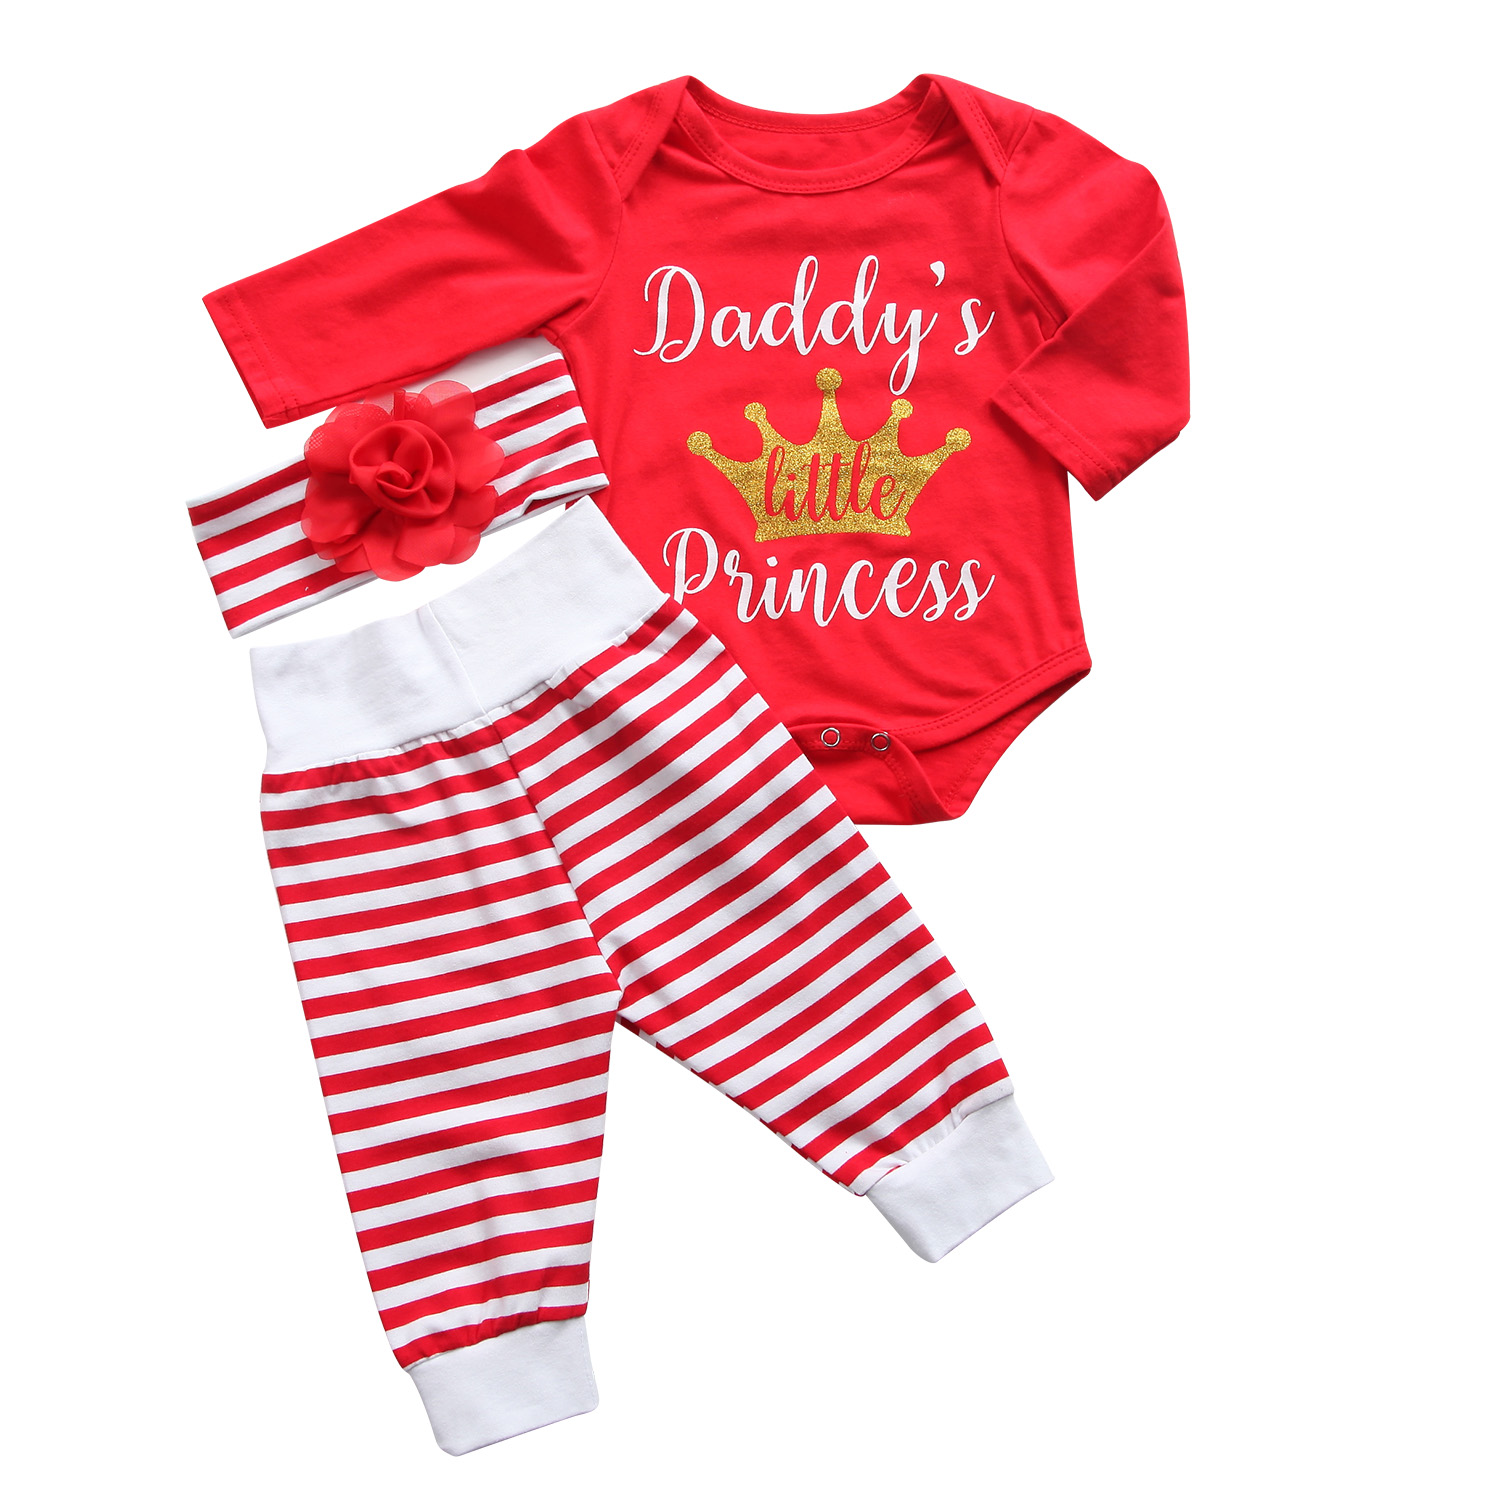 3Ps Newborn Infant Baby Girl Clothes Sets Tops Playsuit Jumpsuit Romper Long Sleeve Pants Outfit Cotton Cute Clothing newborn infant baby girls boys long sleeve clothing 3d ear romper cotton jumpsuit playsuit bunny outfits one piecer clothes kid